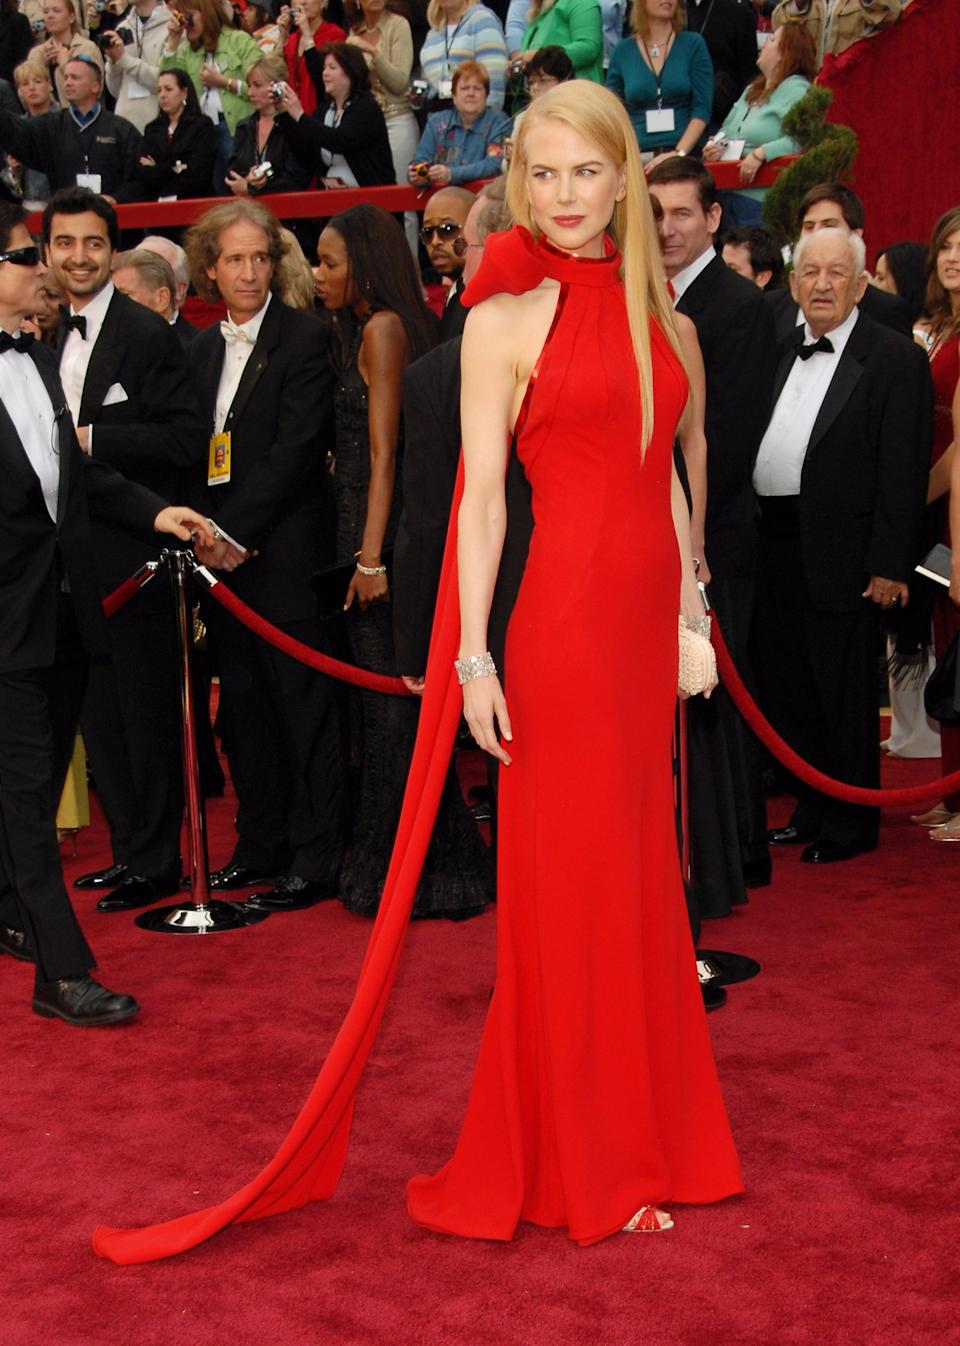 <p>The actress wore a red gown by Balenciaga's former designer Nicolas Ghesquière on the red carpet.</p>